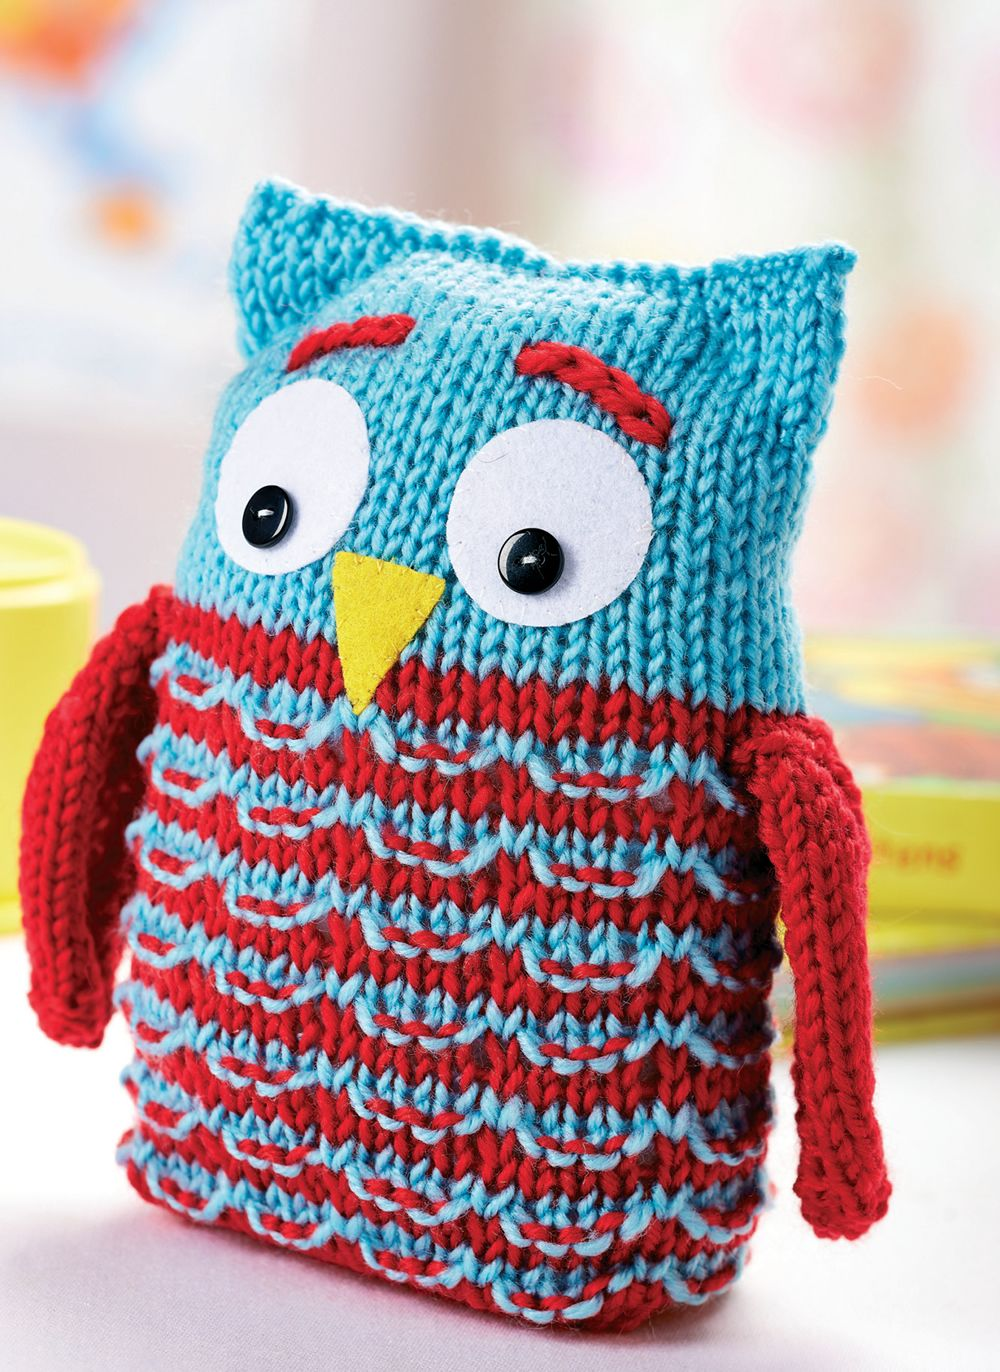 Make It: Knitted Owl - Free Knitting Pattern (Requires Sign Up) #knitting #ravelry #amigurumi #free